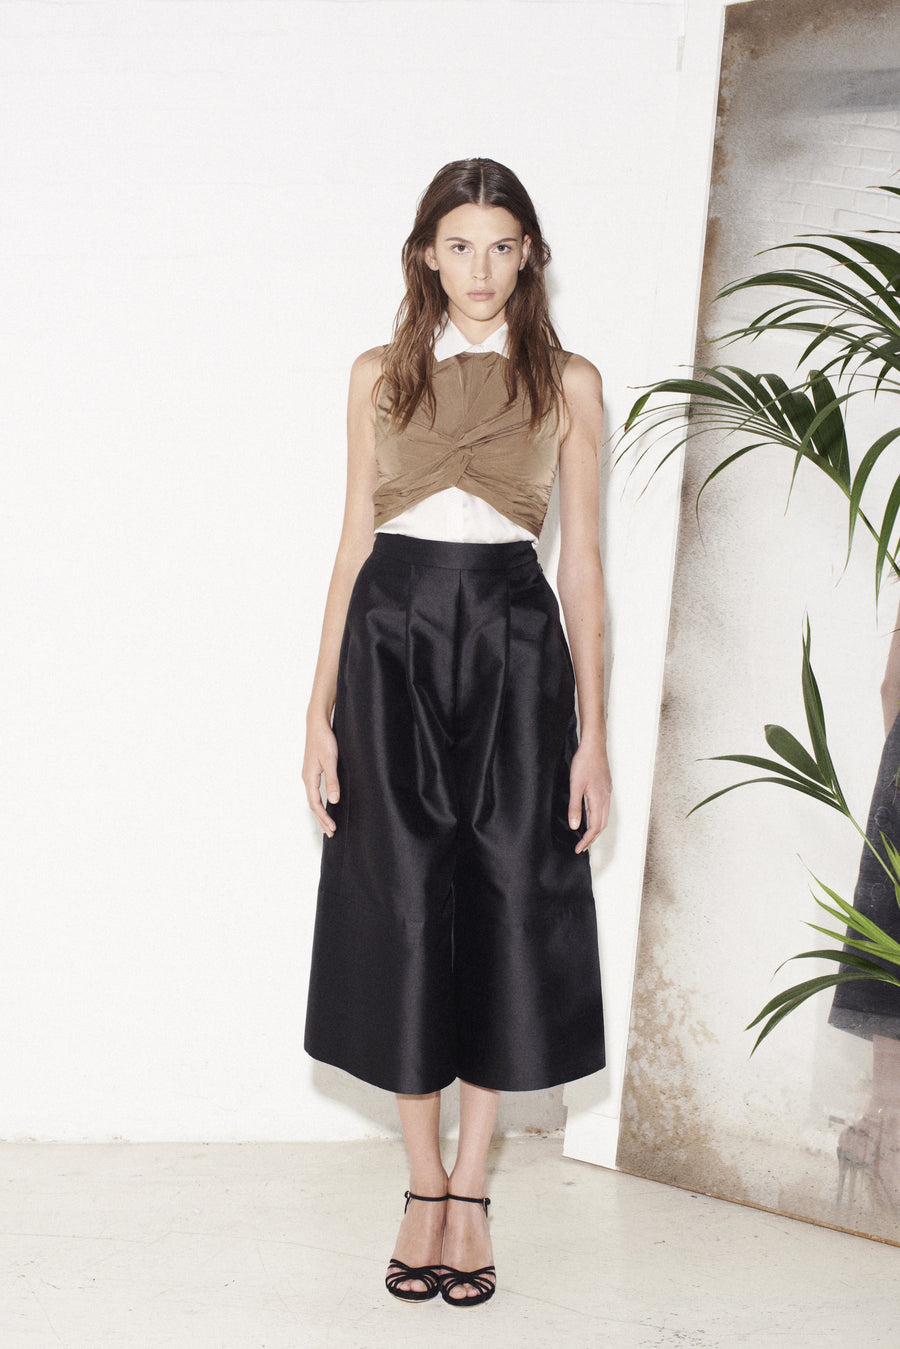 SS2013 / Look 14